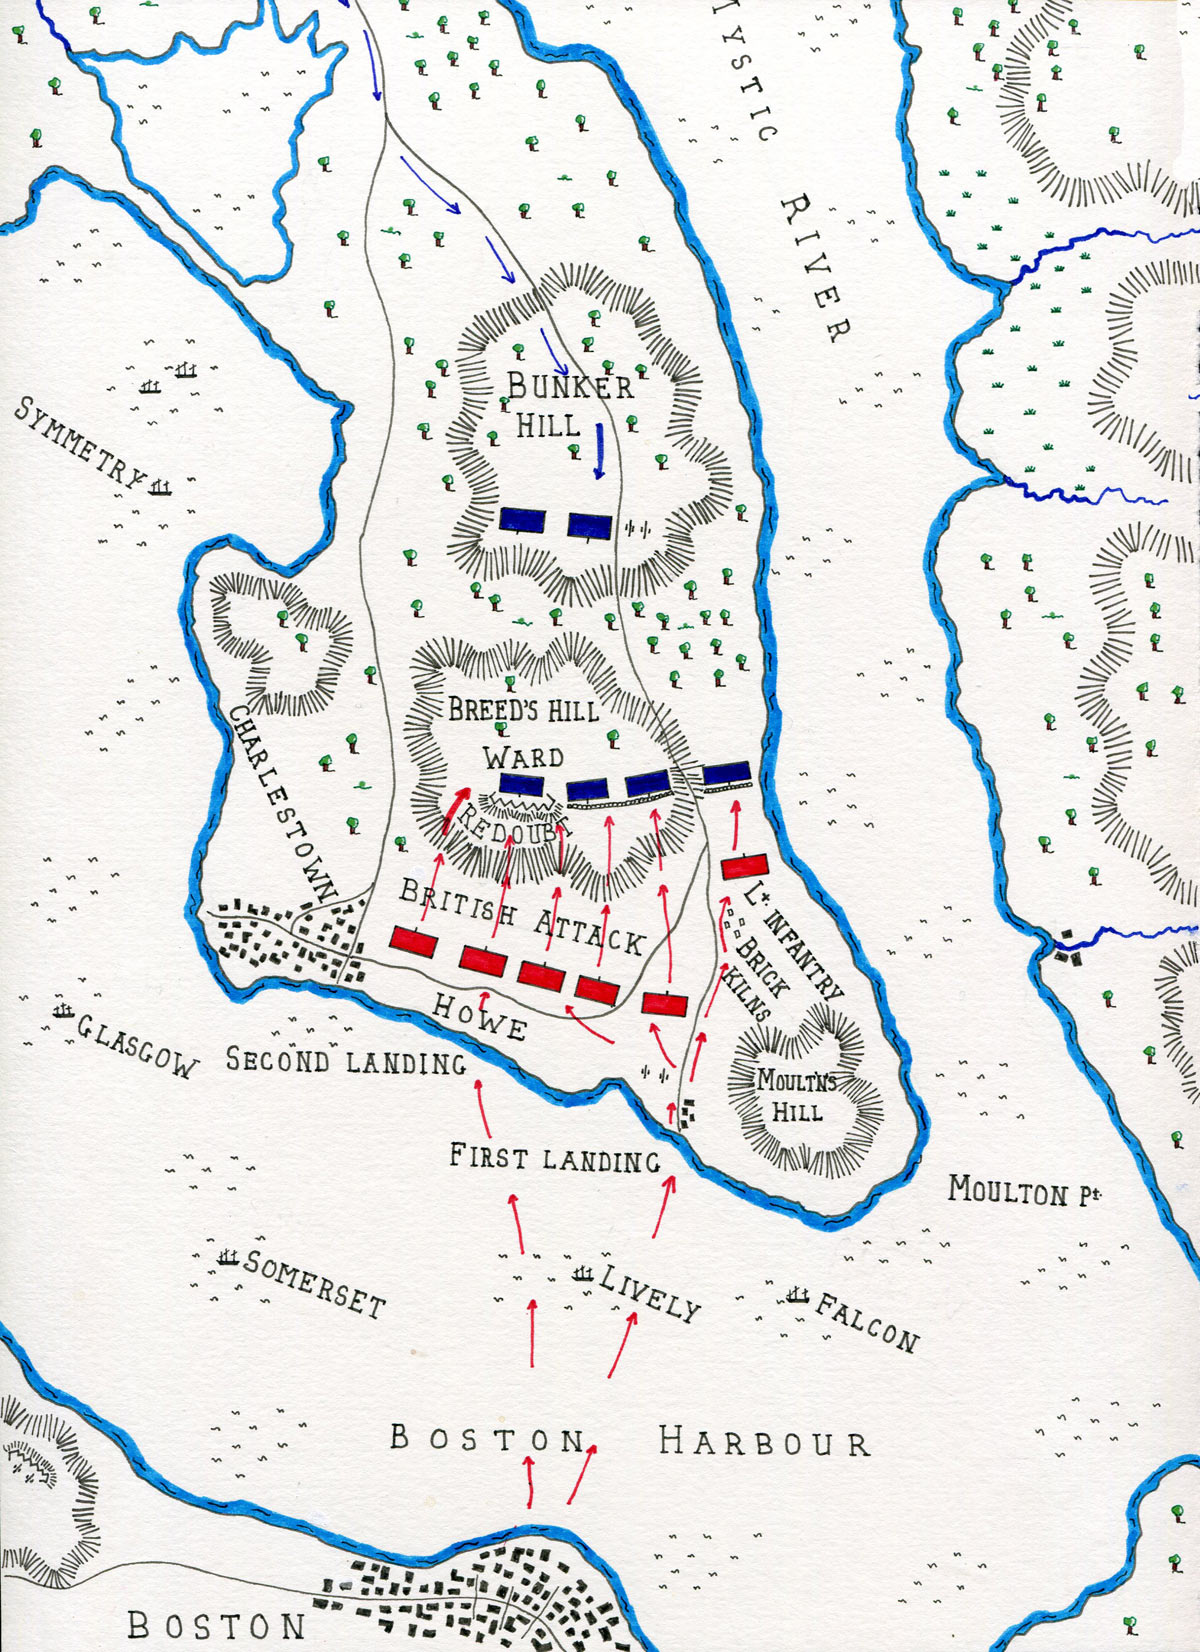 Httpswwwbritishbattlescomwpcontentuploads - Battle of saratoga us maps